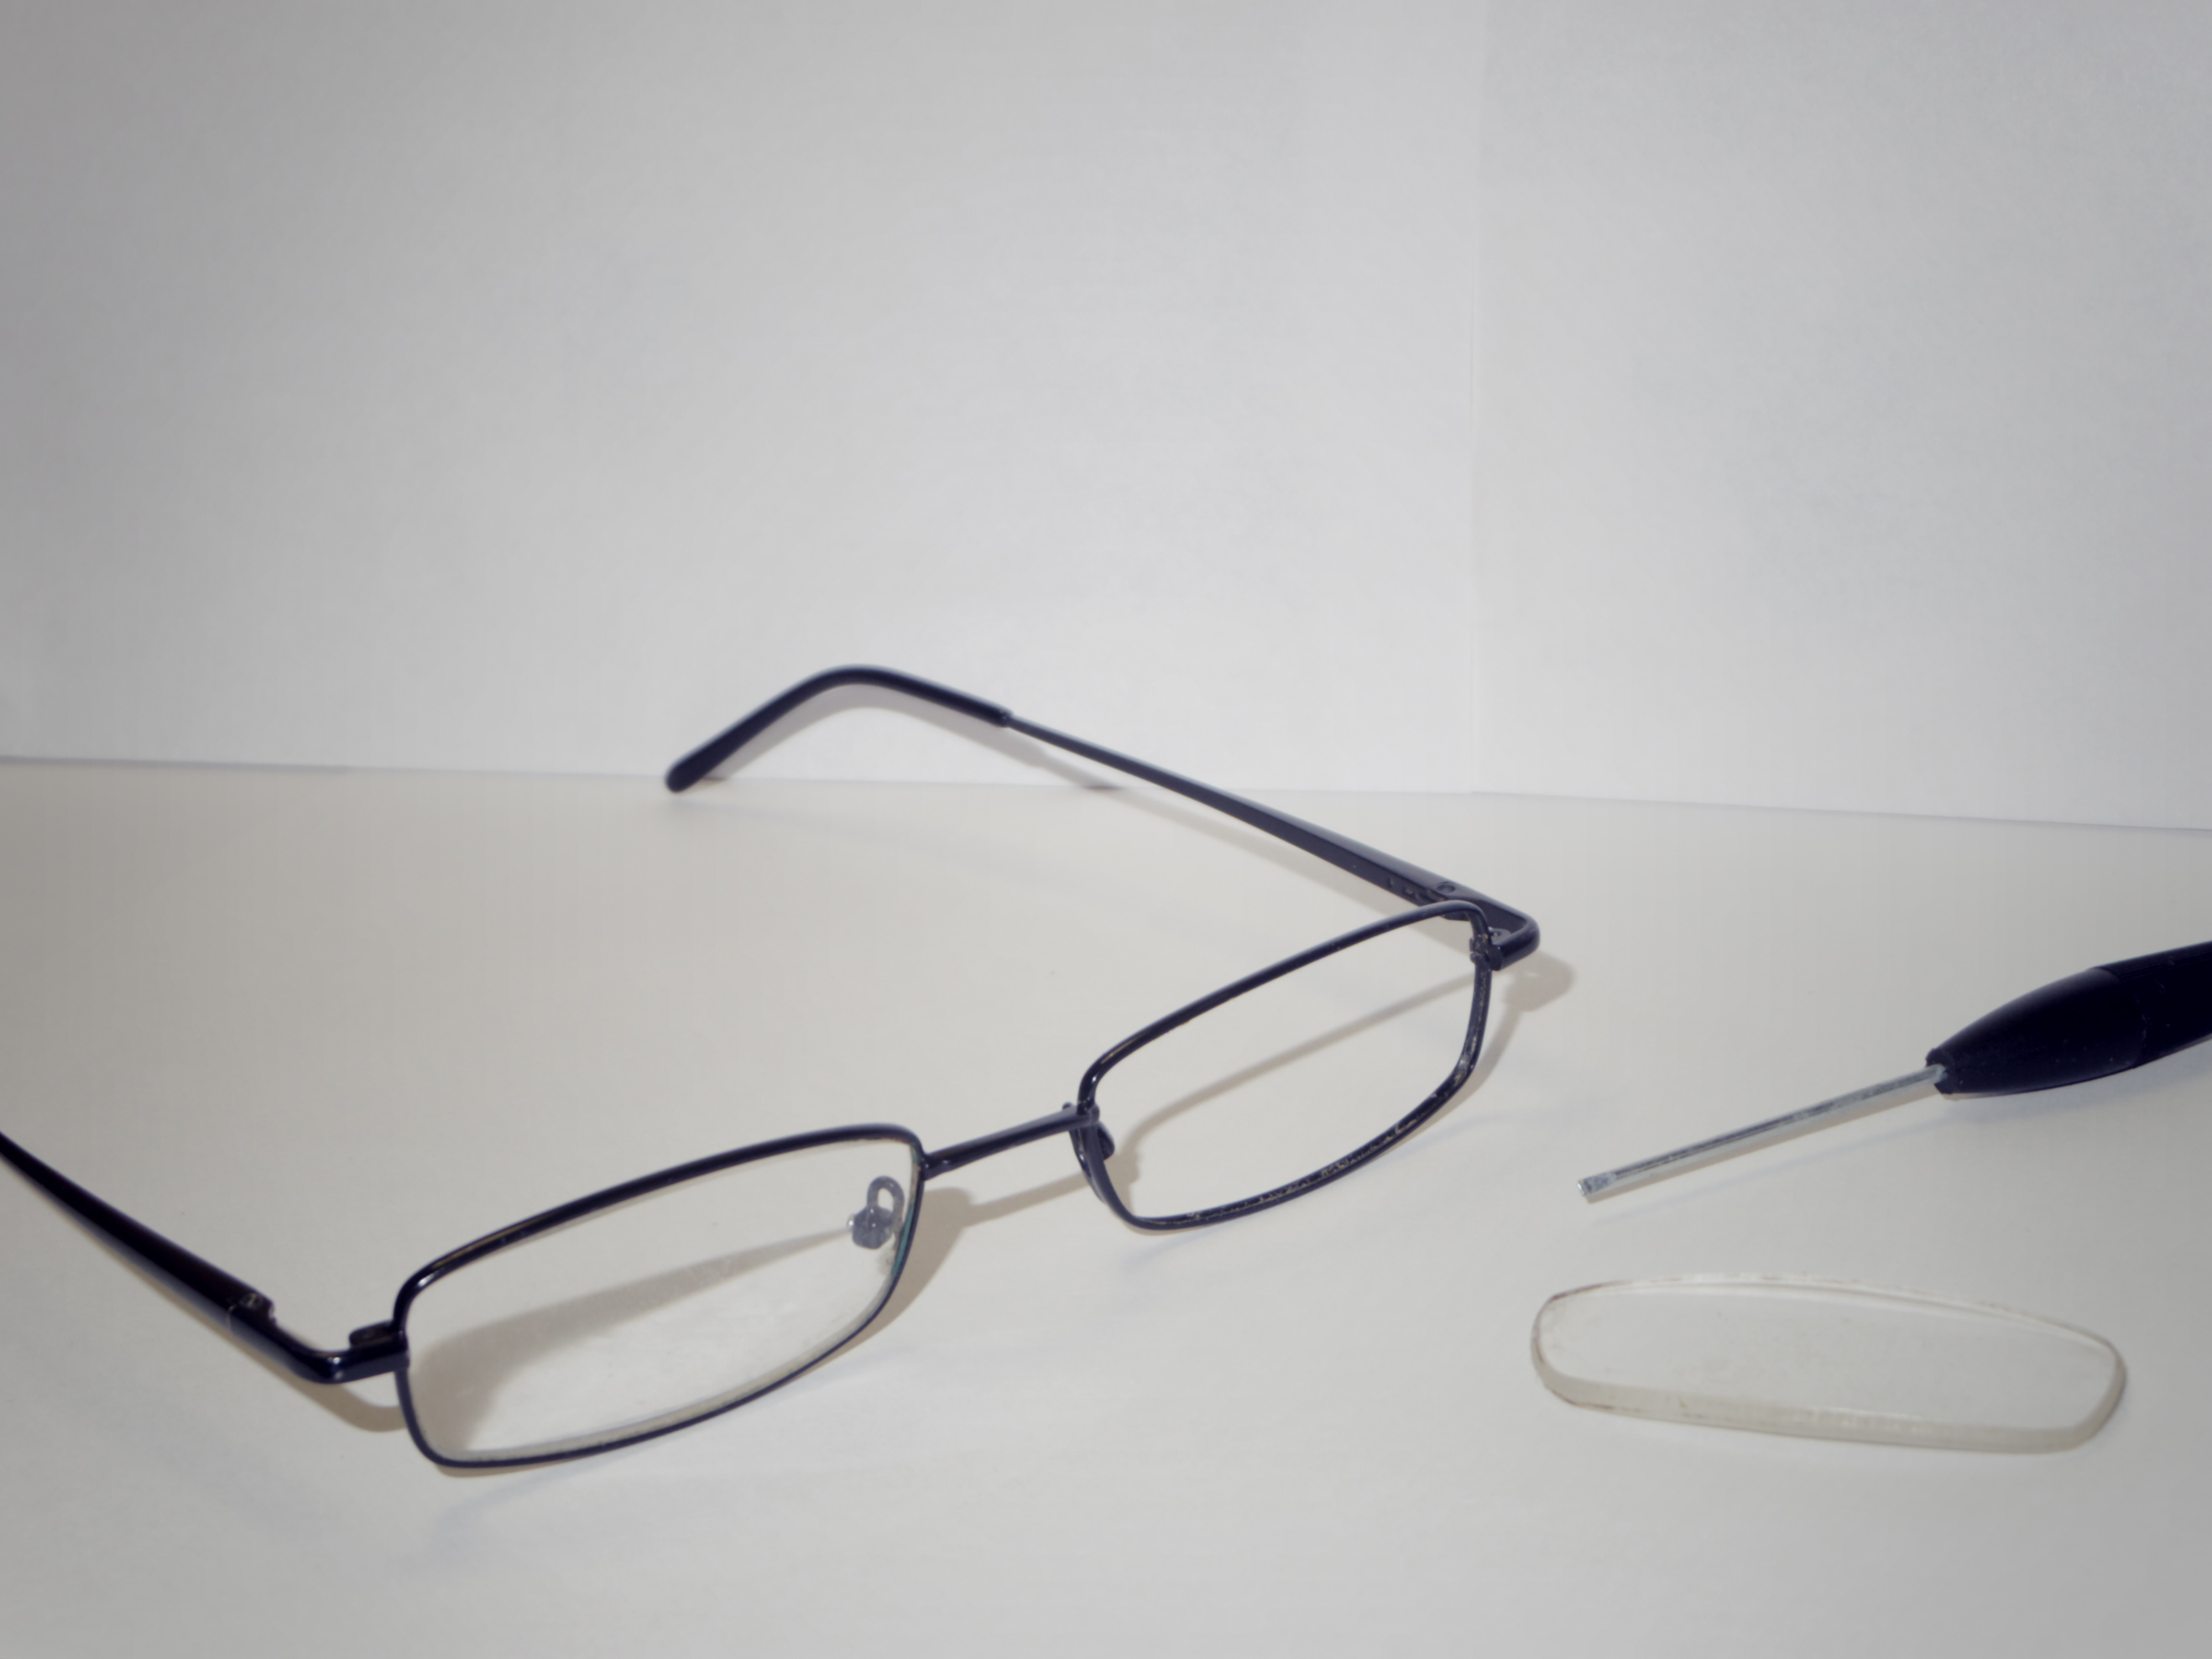 How to Replace Lens in Eyeglasses with Thin Metal Frames - iFixit ...